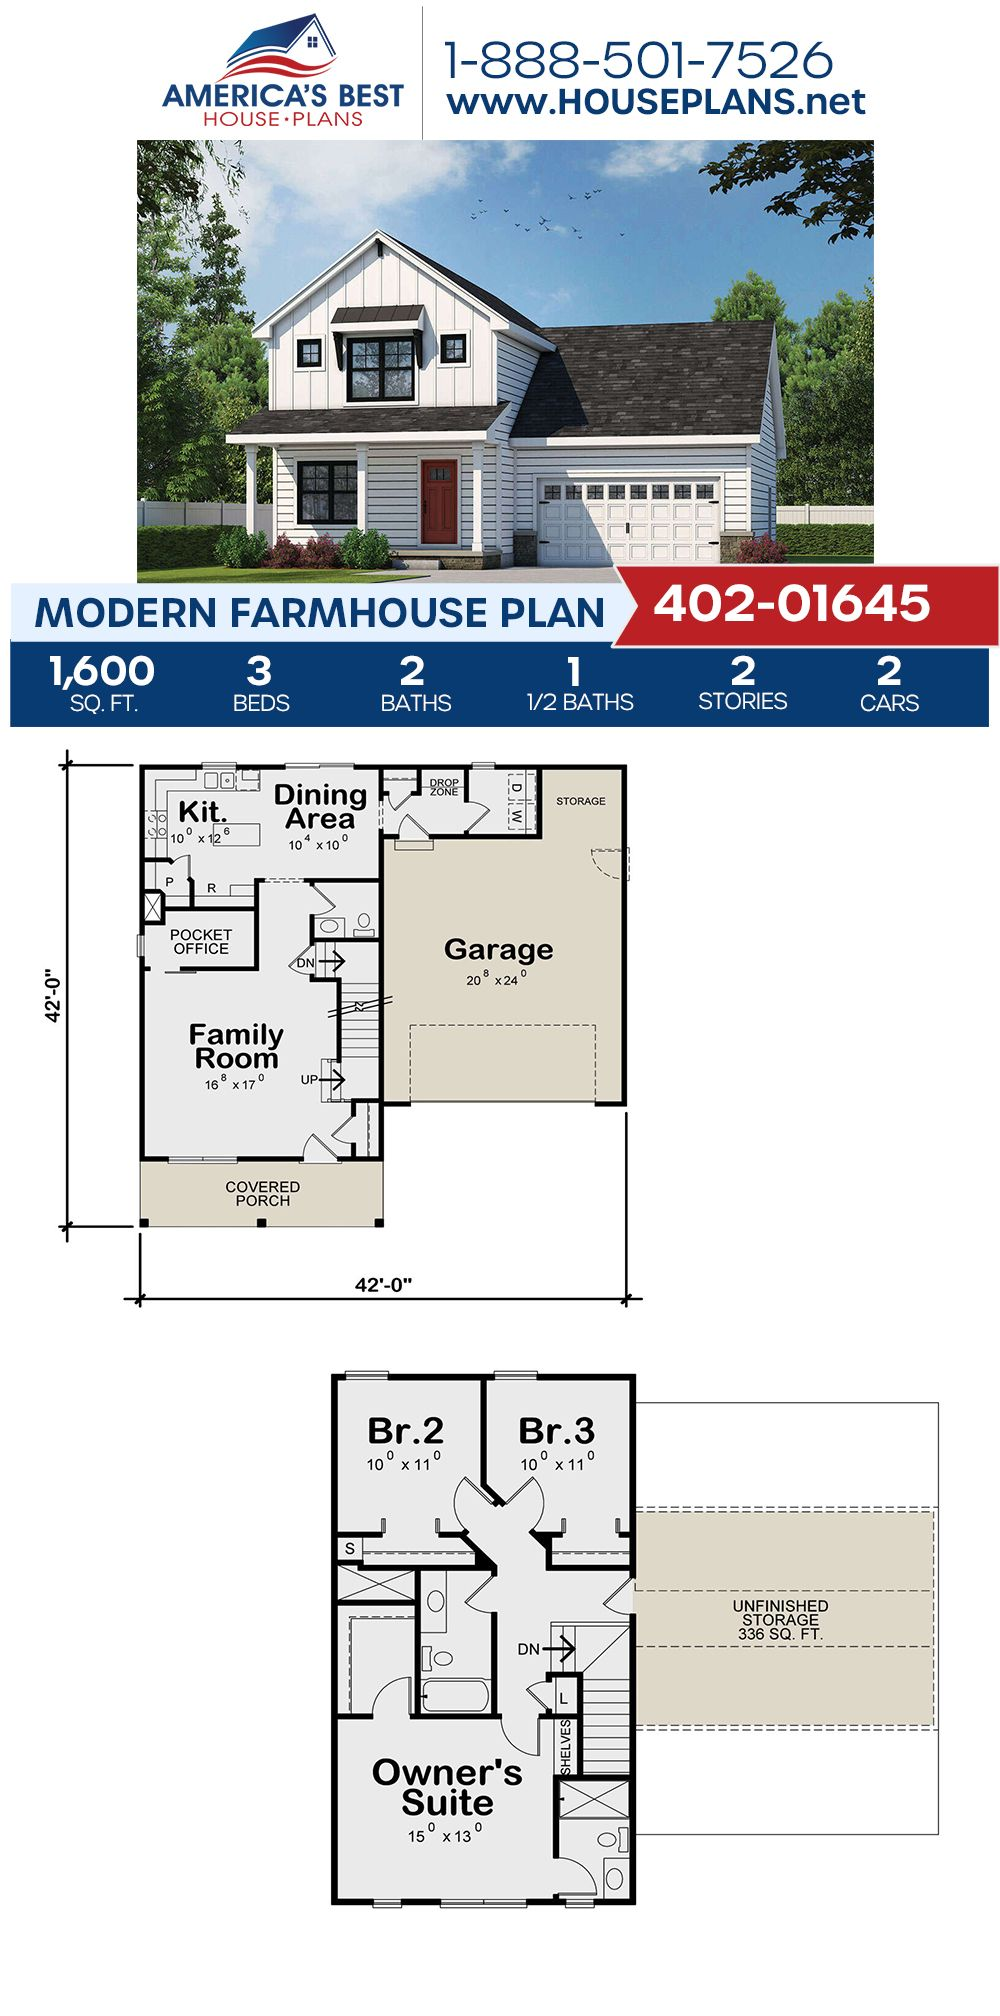 Modern Farmhouse Plan 402